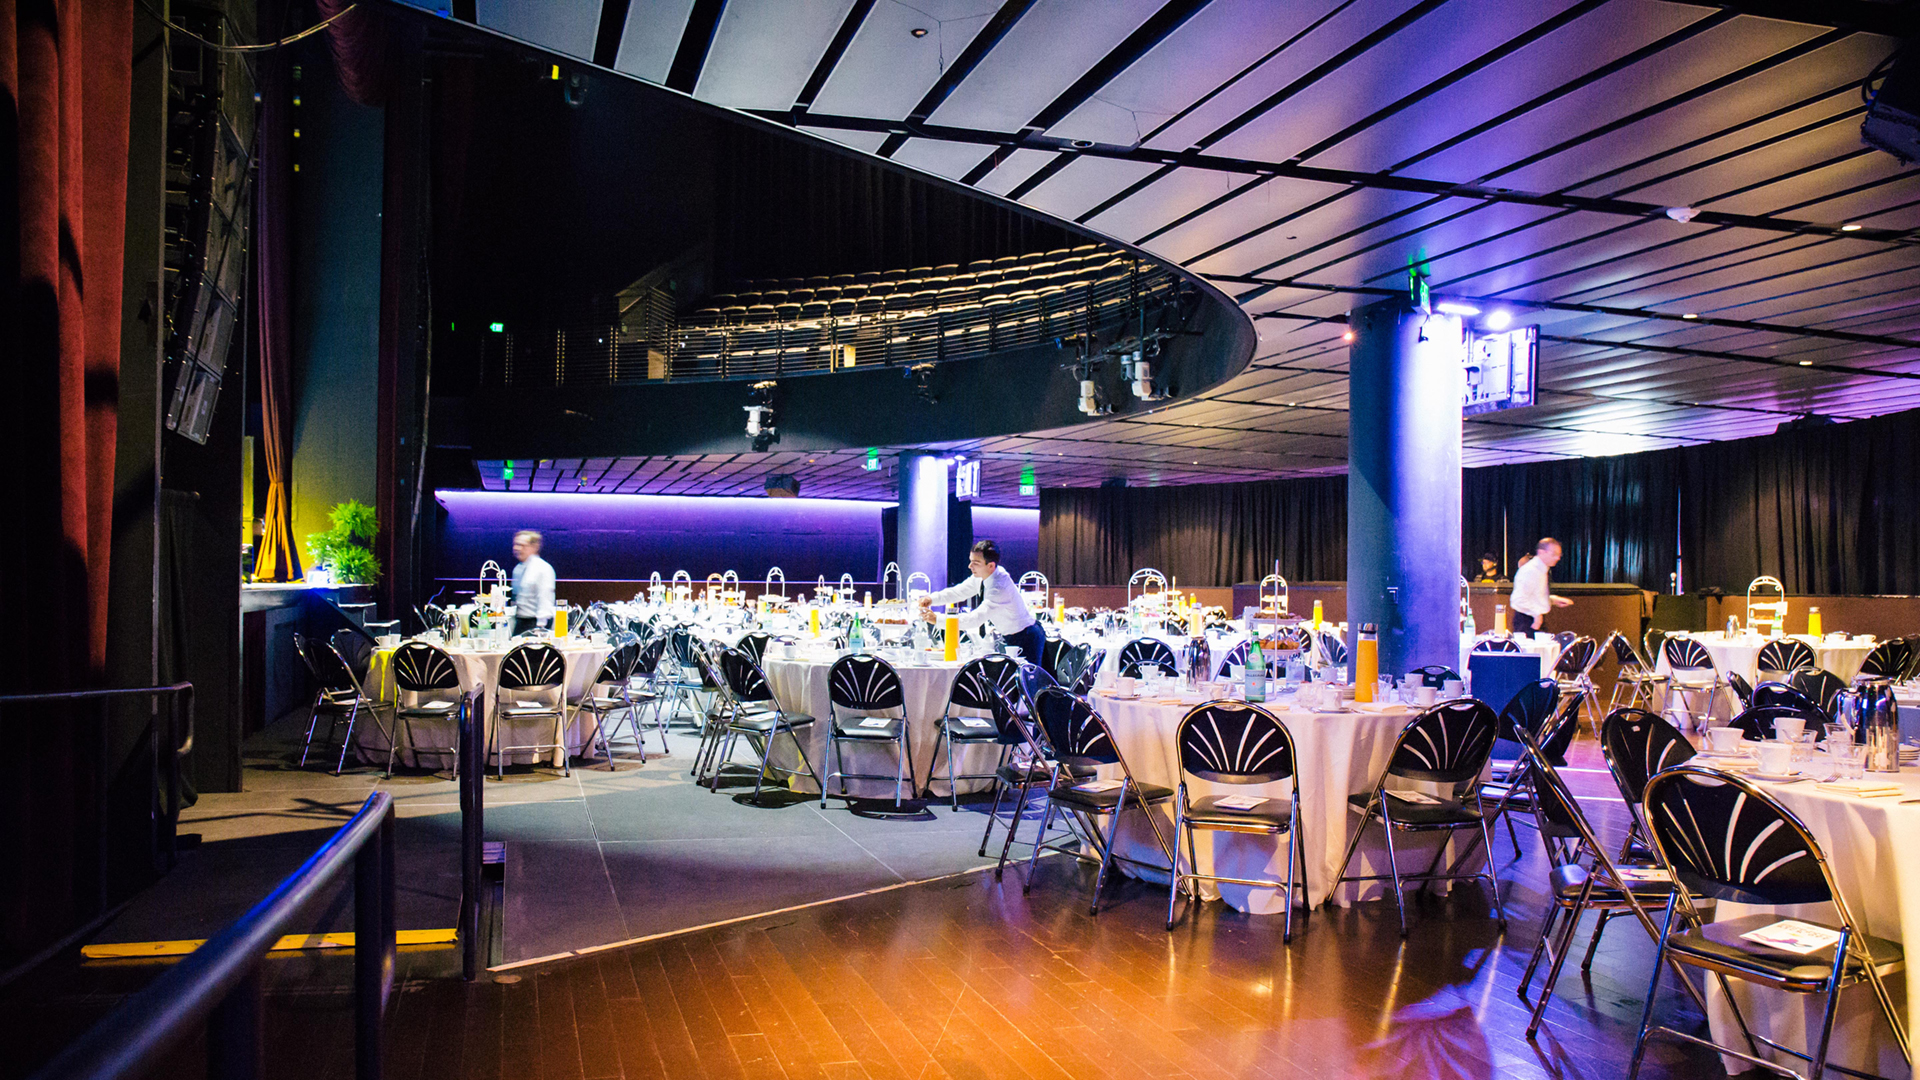 the-top-20-corporate-event-venues-in-los-angeles-9